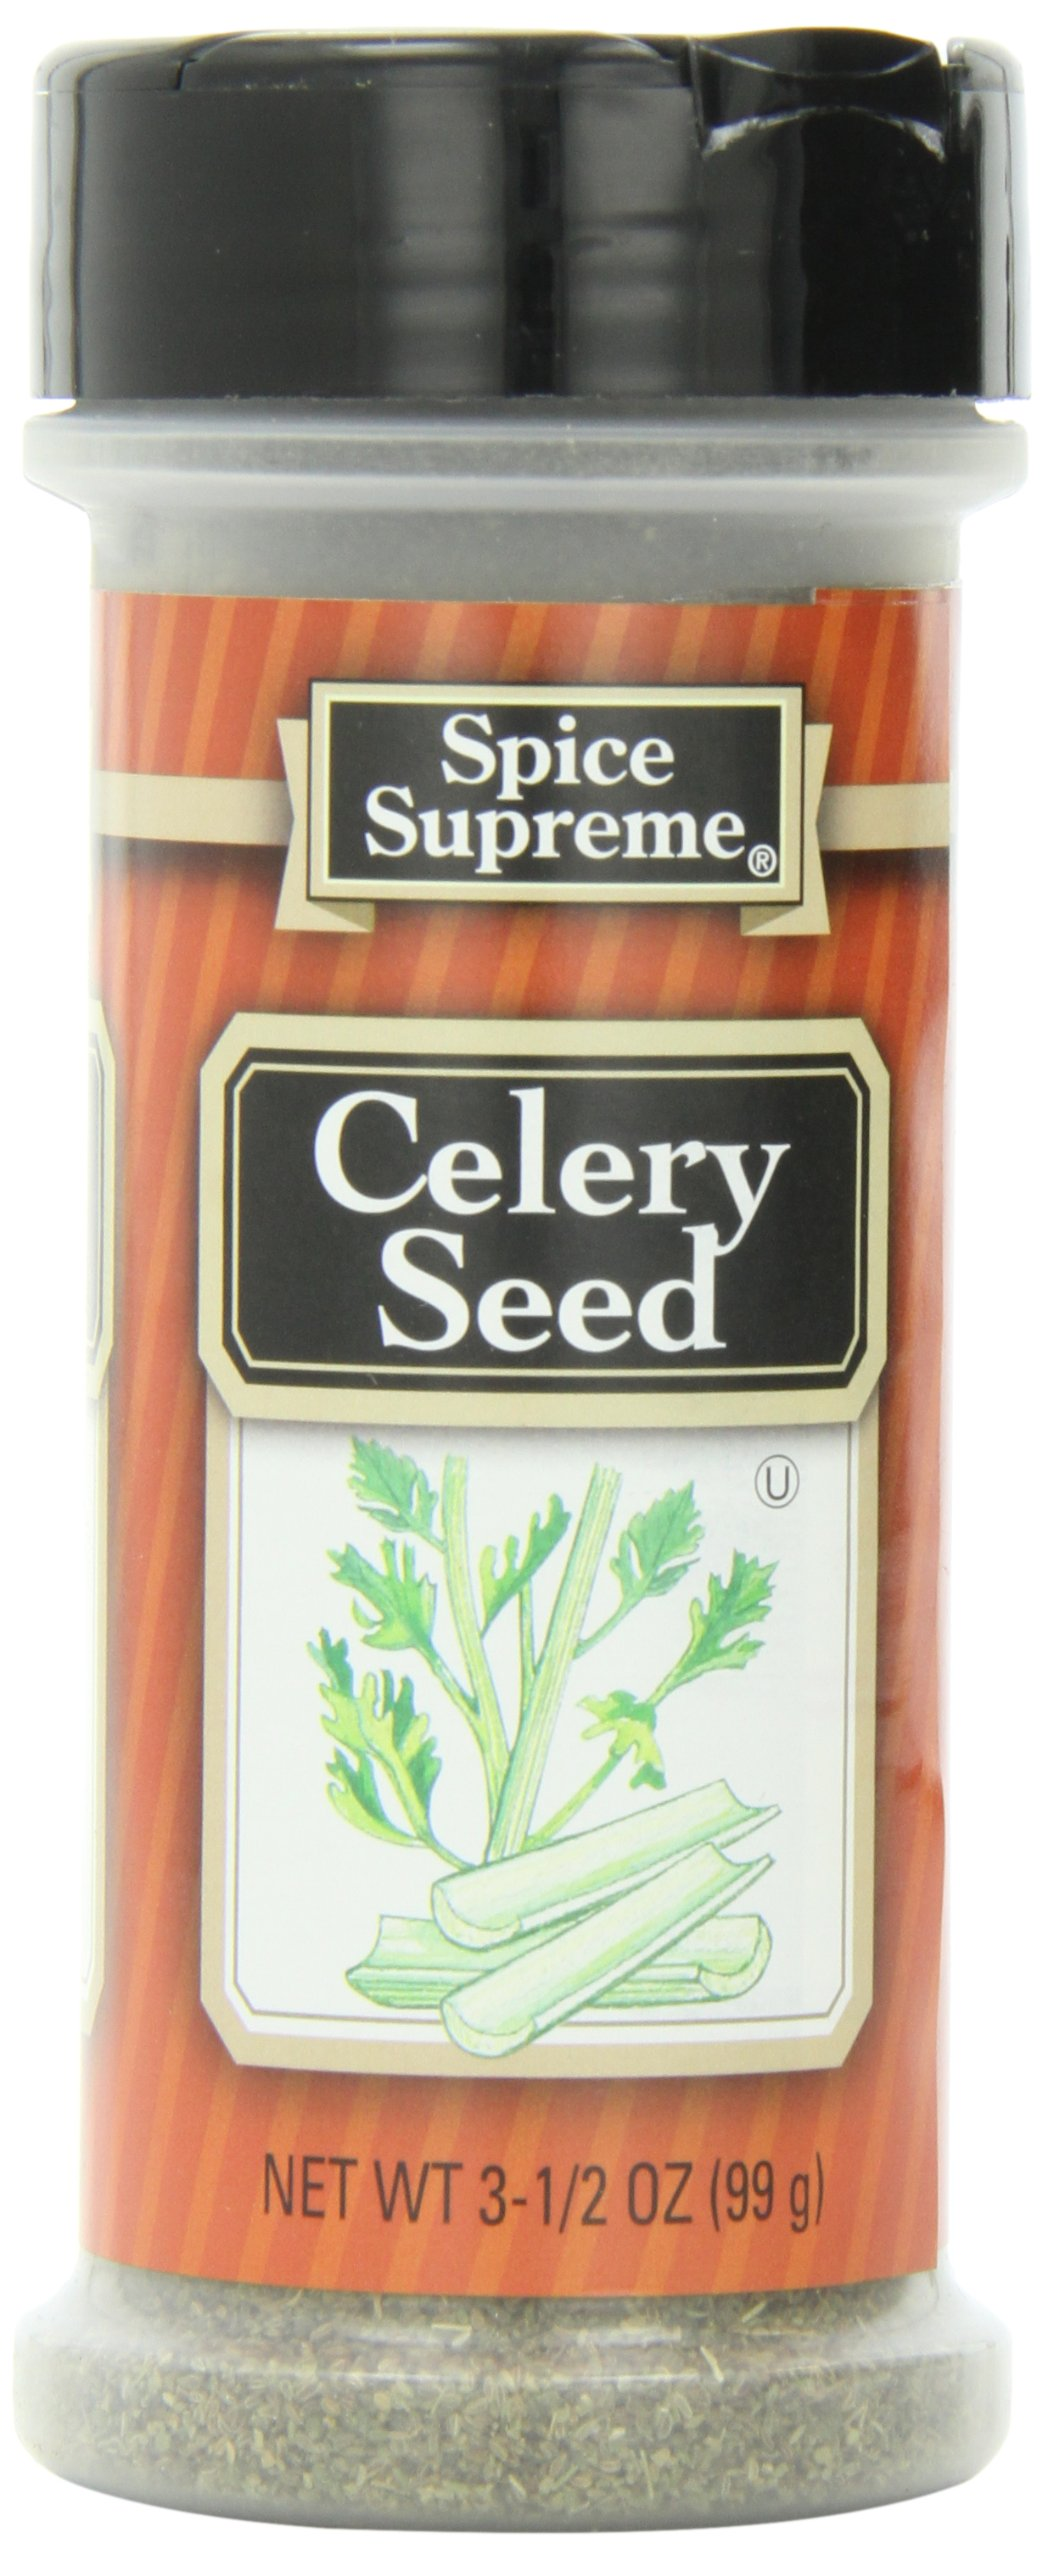 Spice Supreme Celery Seed, Whole, 3.5-Ounce (Pack of 12)